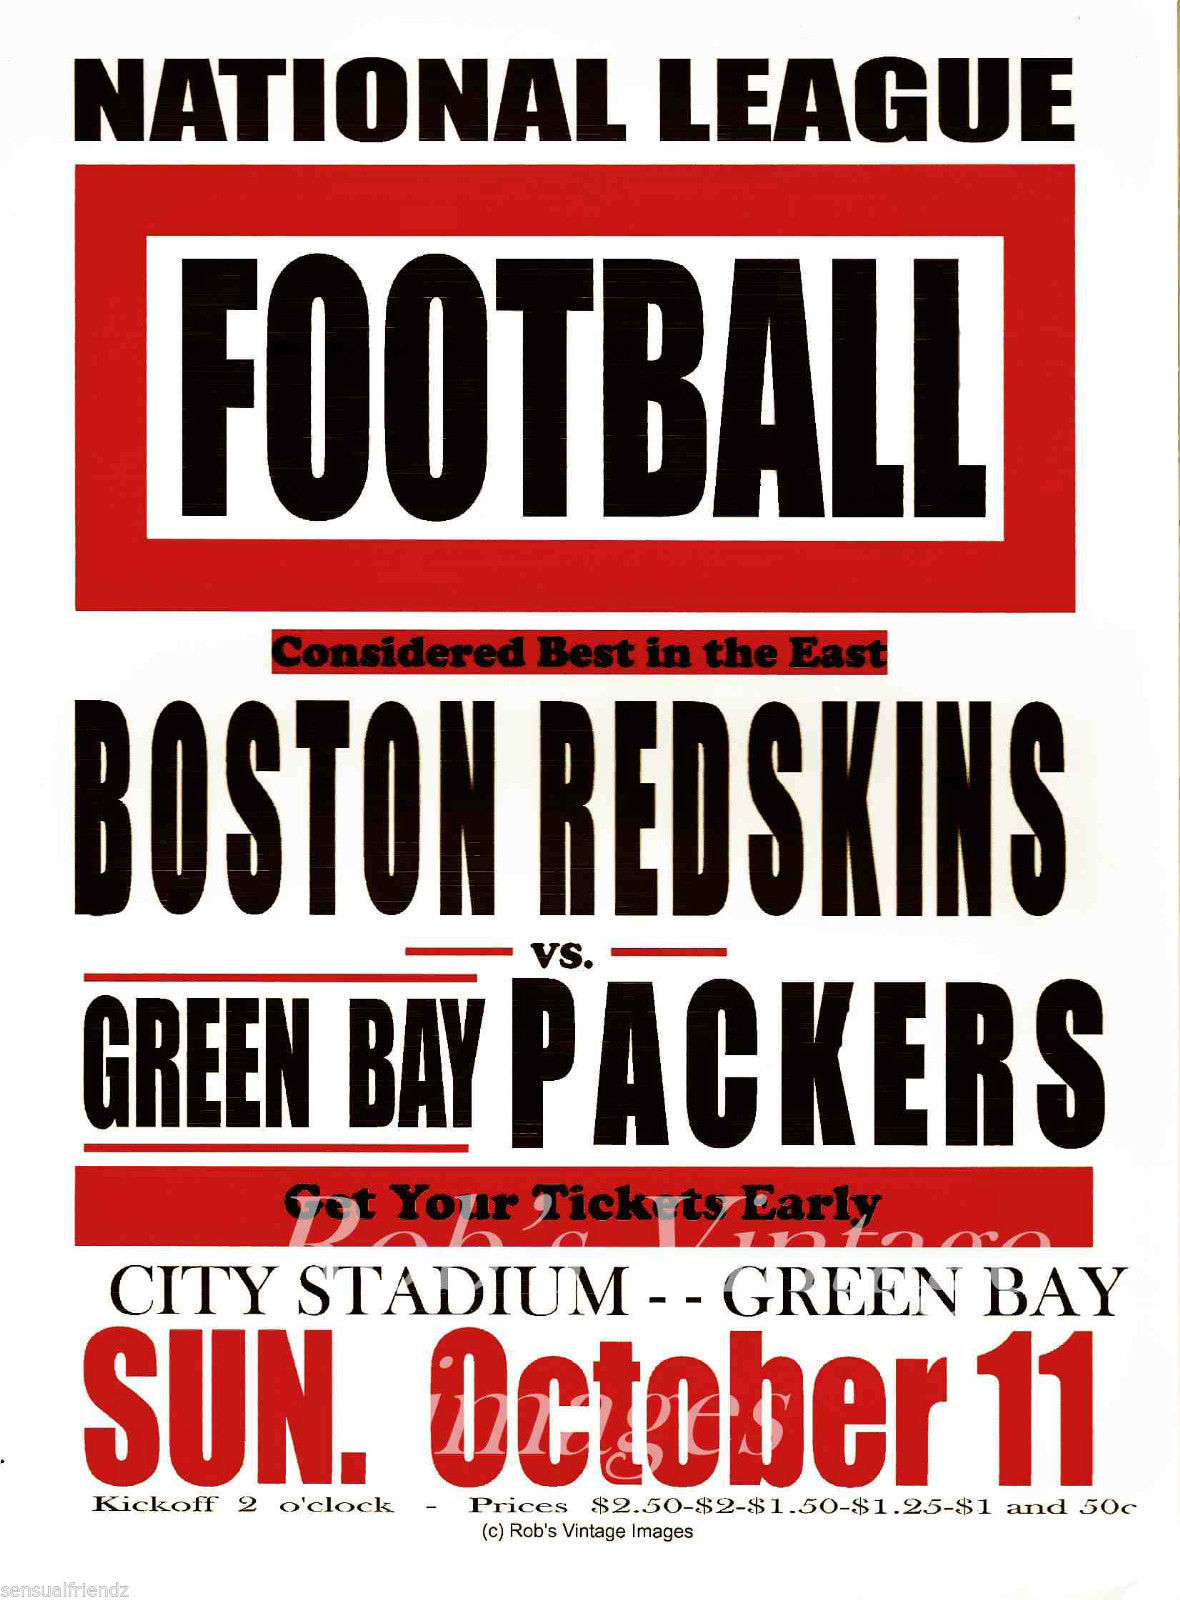 Green Bay Packers vs Boston Redskins Poster and 16 similar items